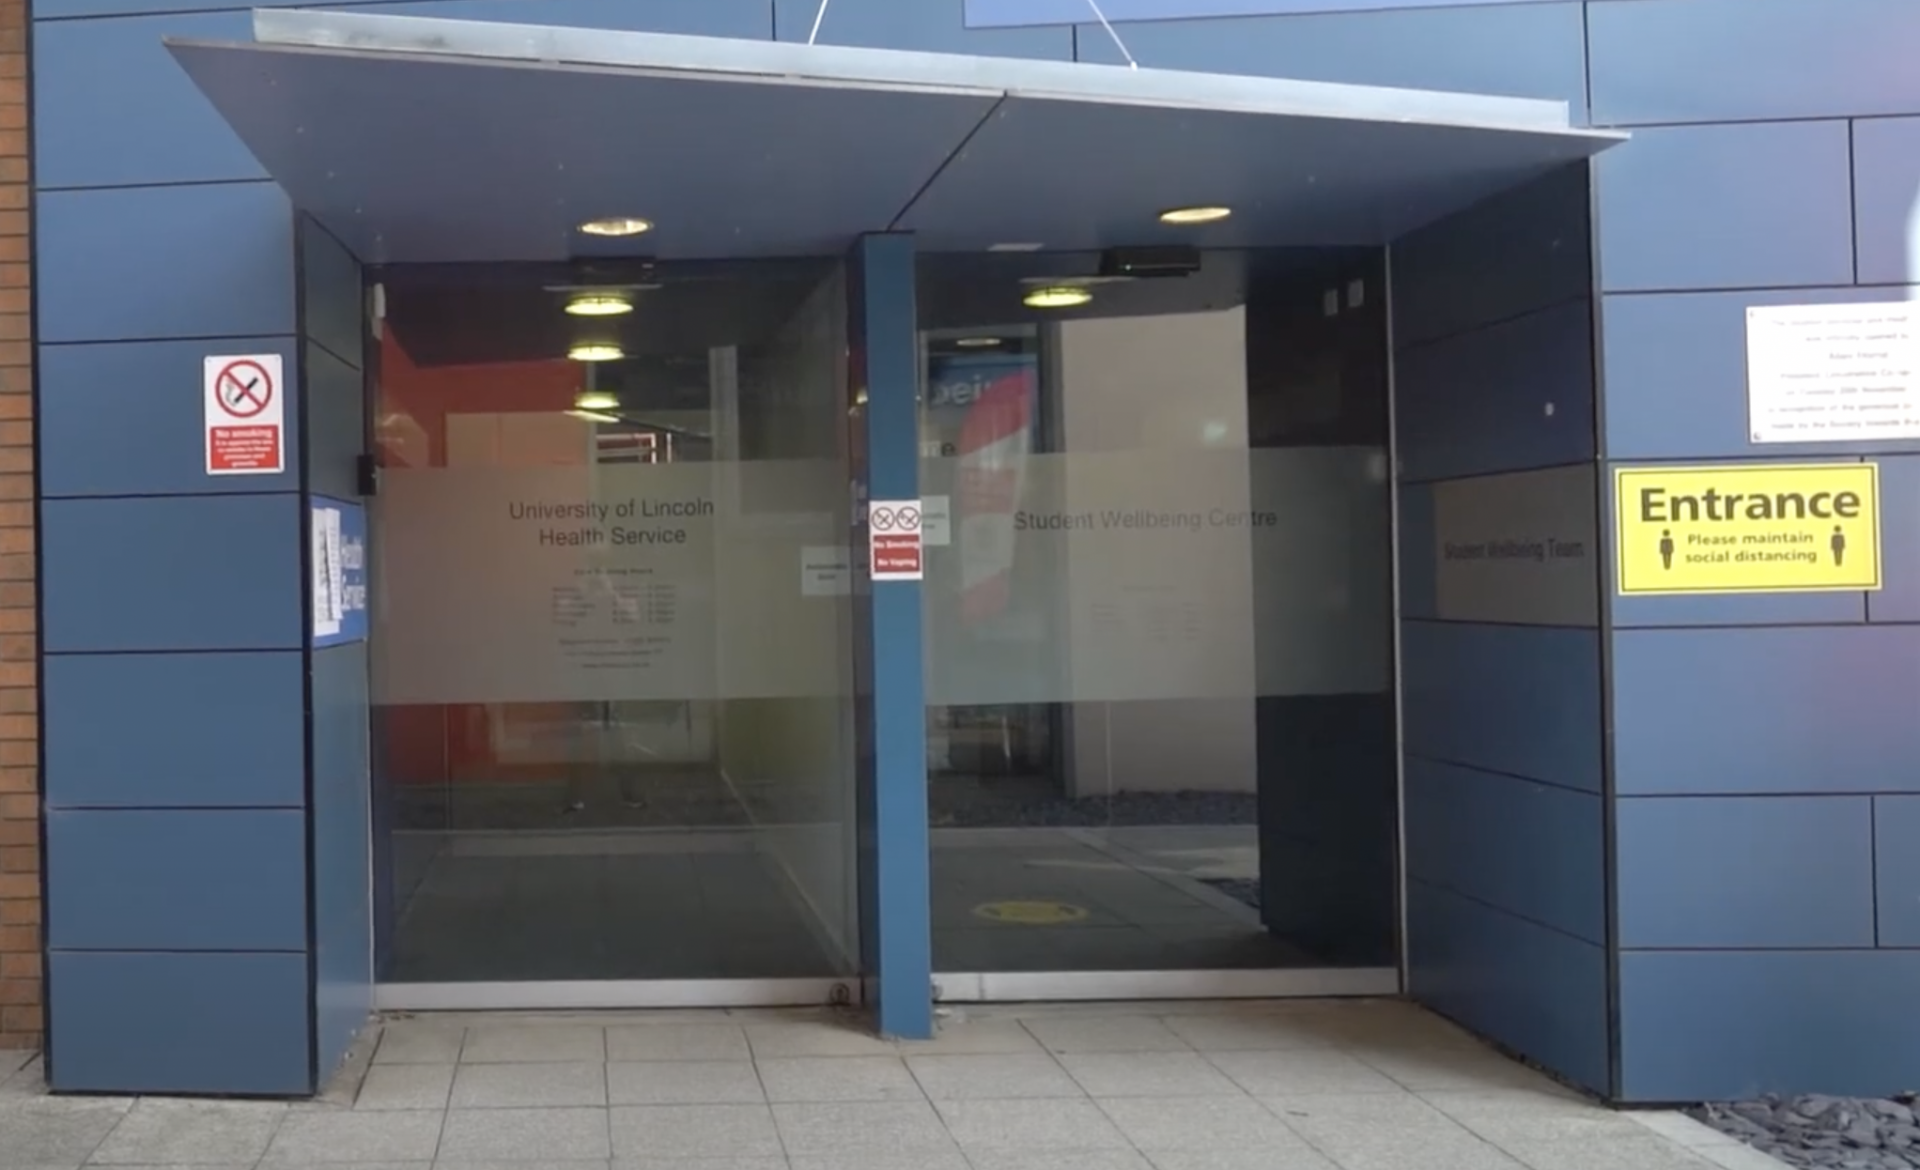 The doors to the Lincoln Health Service